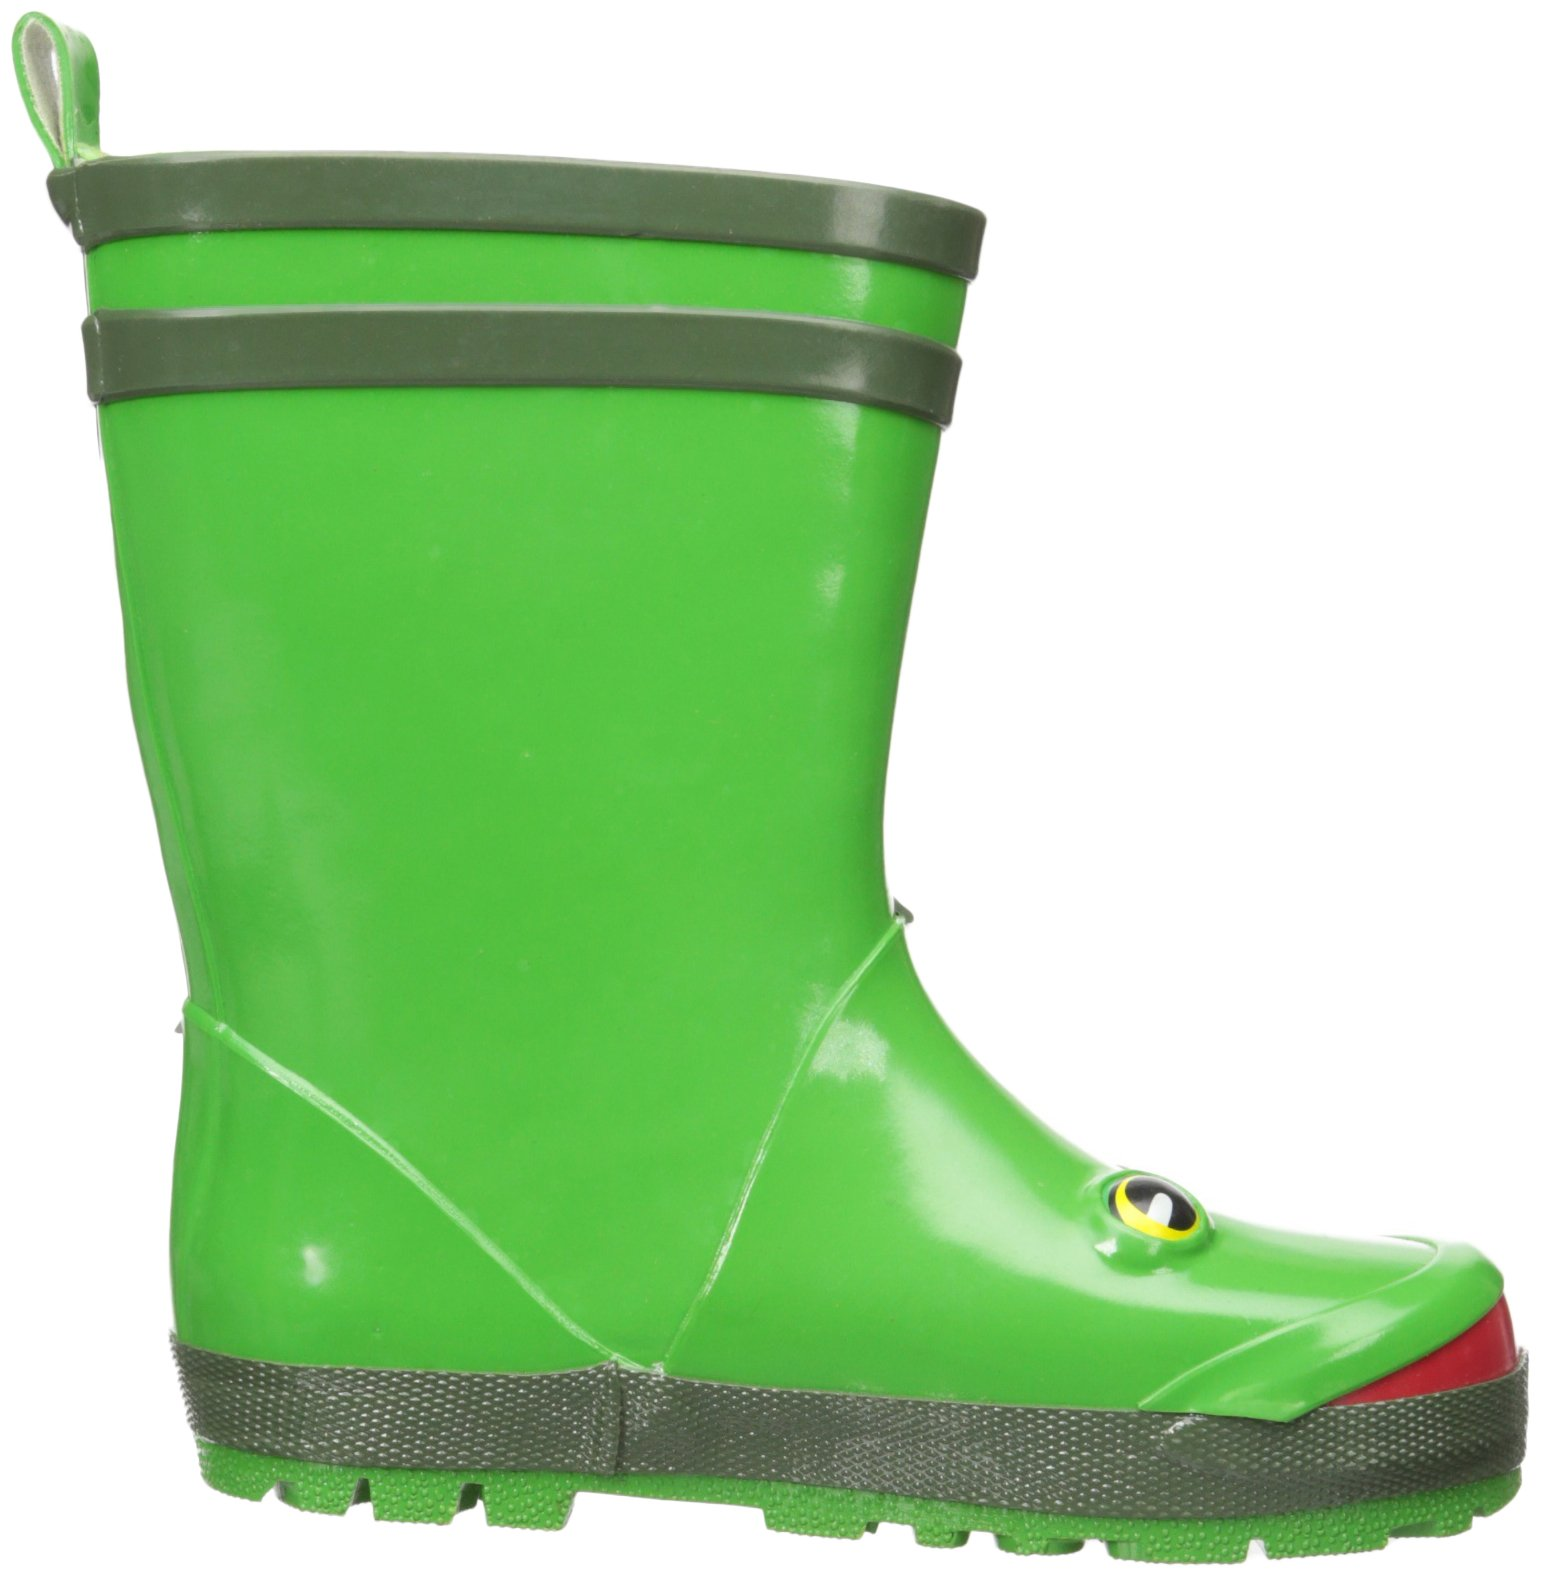 Kidorable Green Frog Natural Rubber Rain Boots With A Pull On Heel Tab (Little Kid) 12 M US by Kidorable (Image #8)